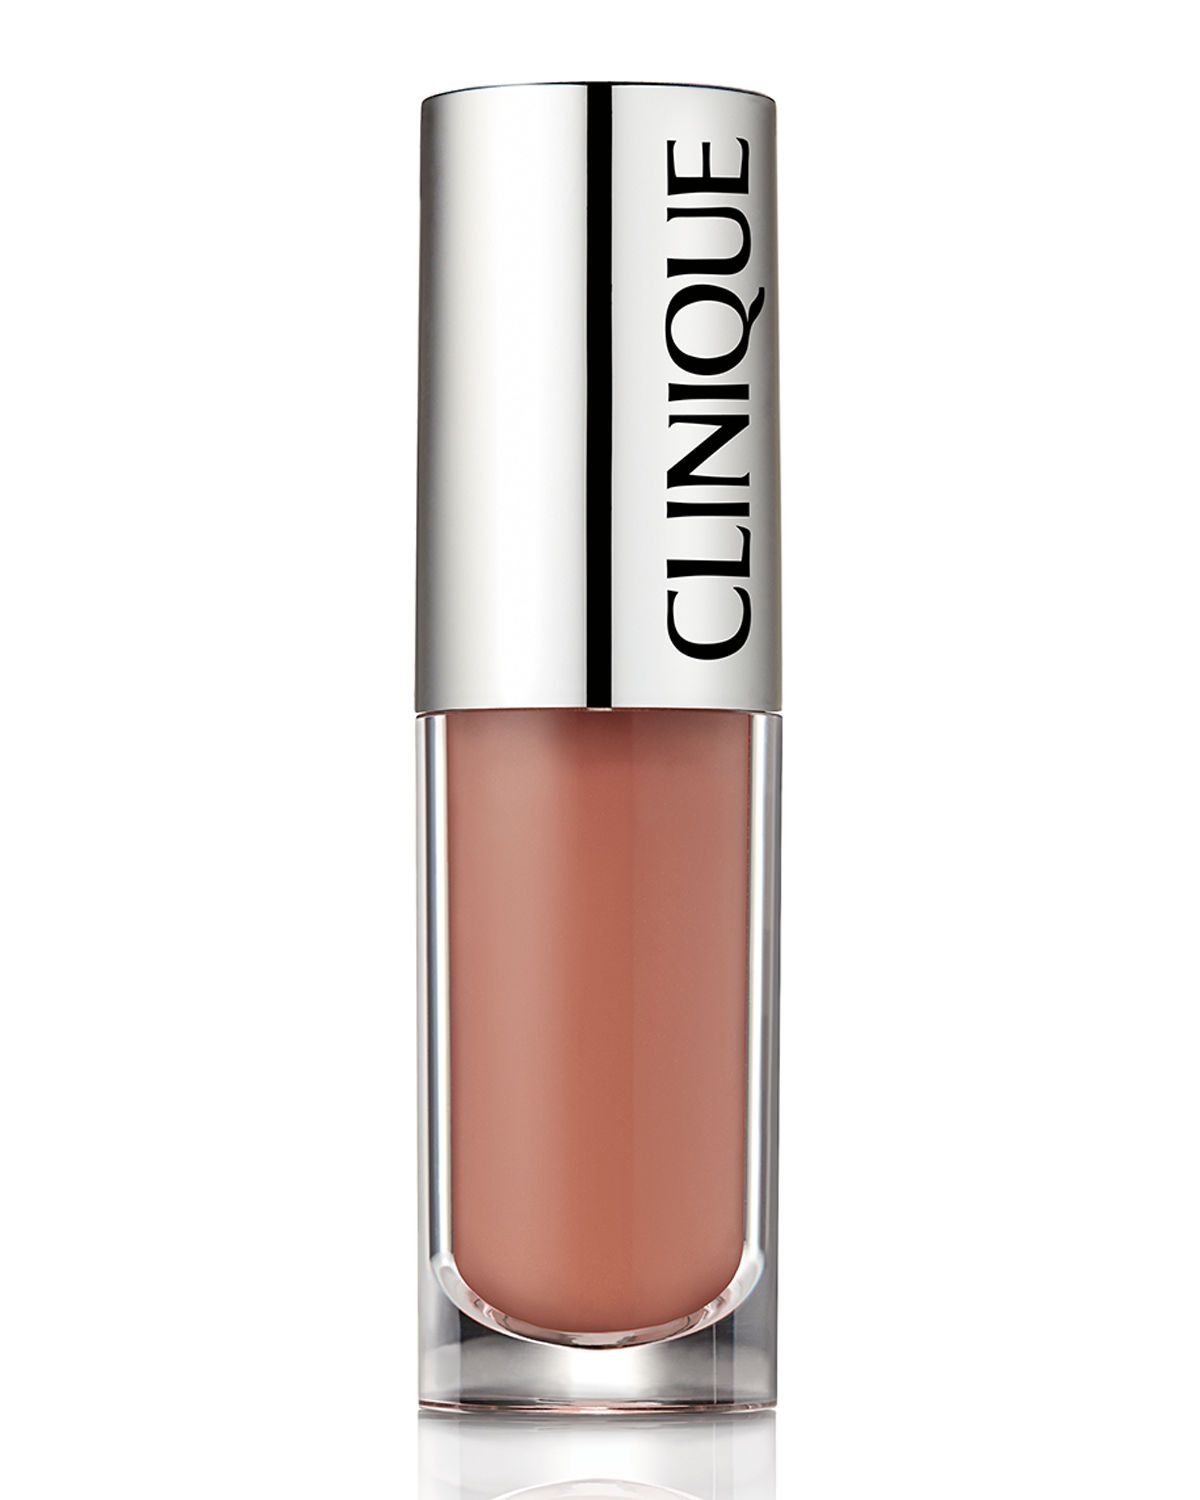 Marimekko Pop Splash Lip Gloss + Hydration